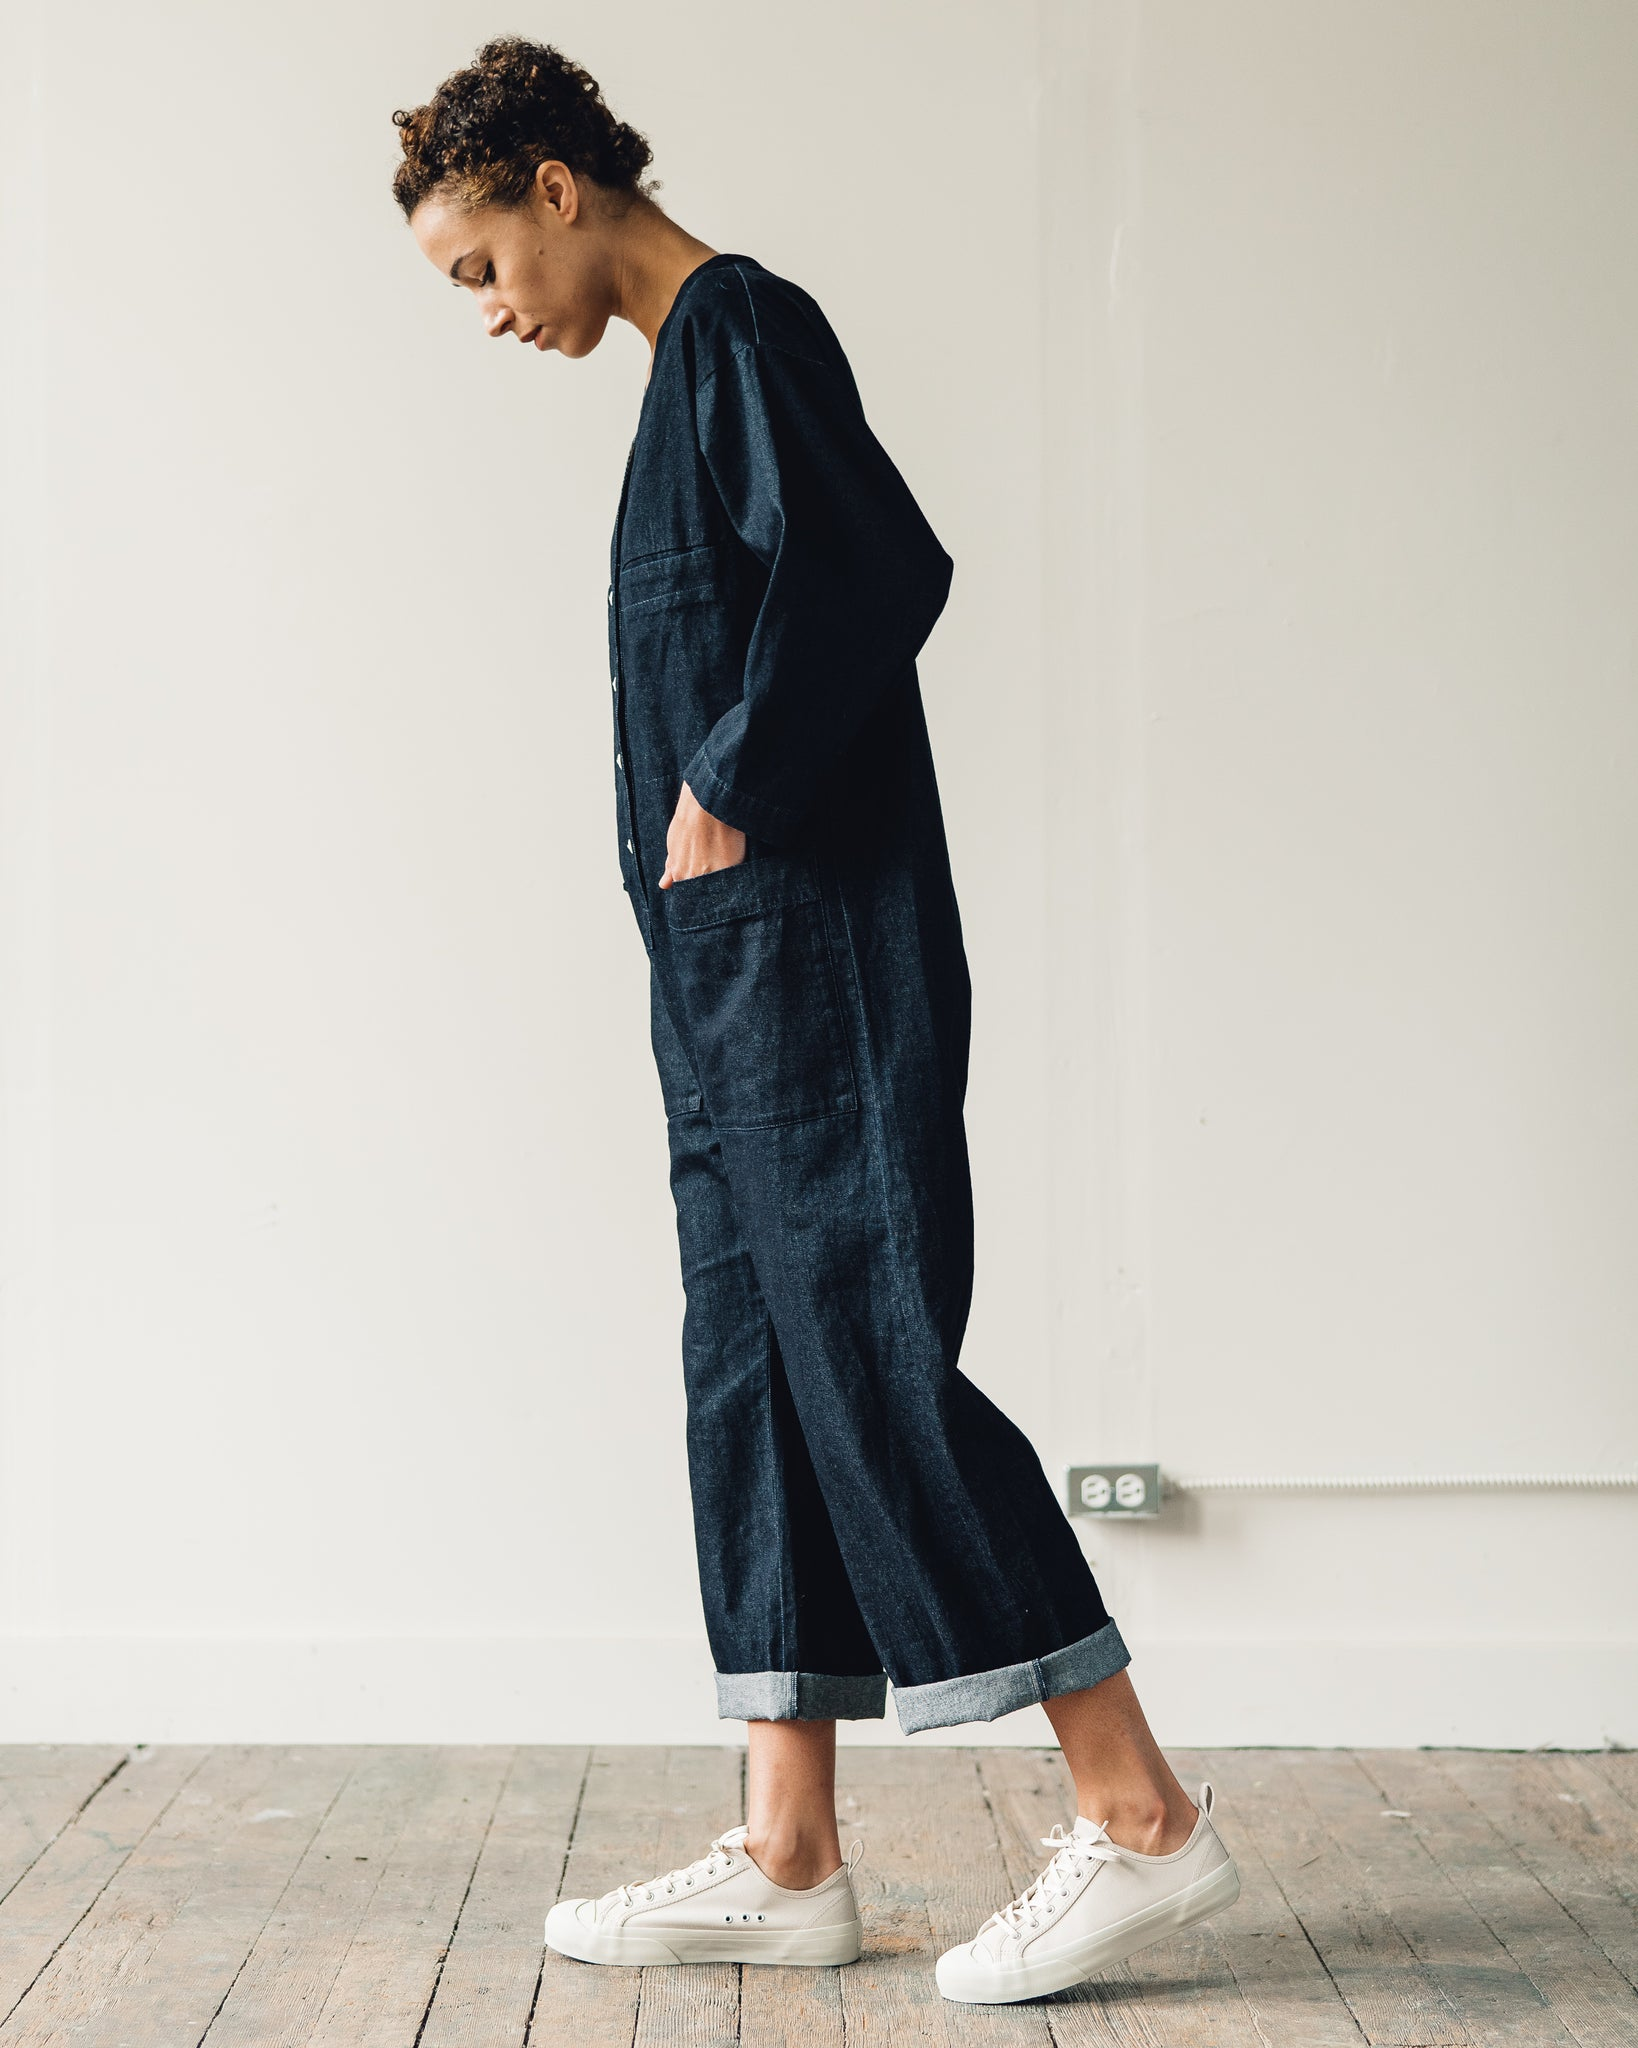 Ilana Kohn Tuck Coverall, Denim